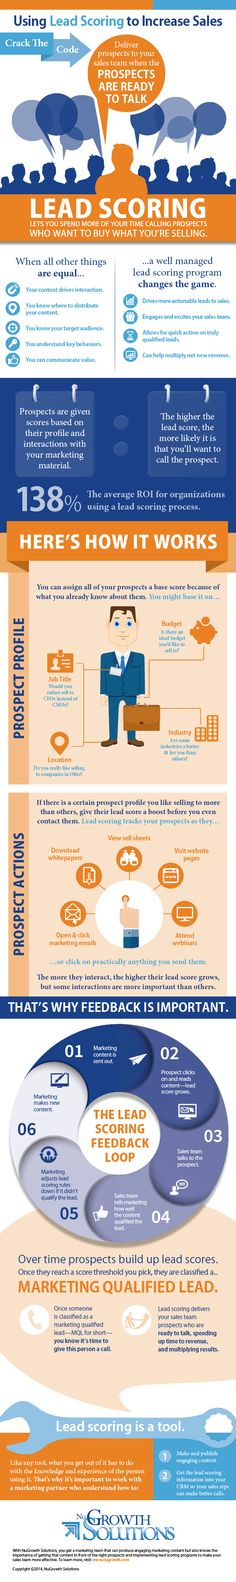 Using Lead Scoring to Increase Sales   #Infographic #Sales #Marketing